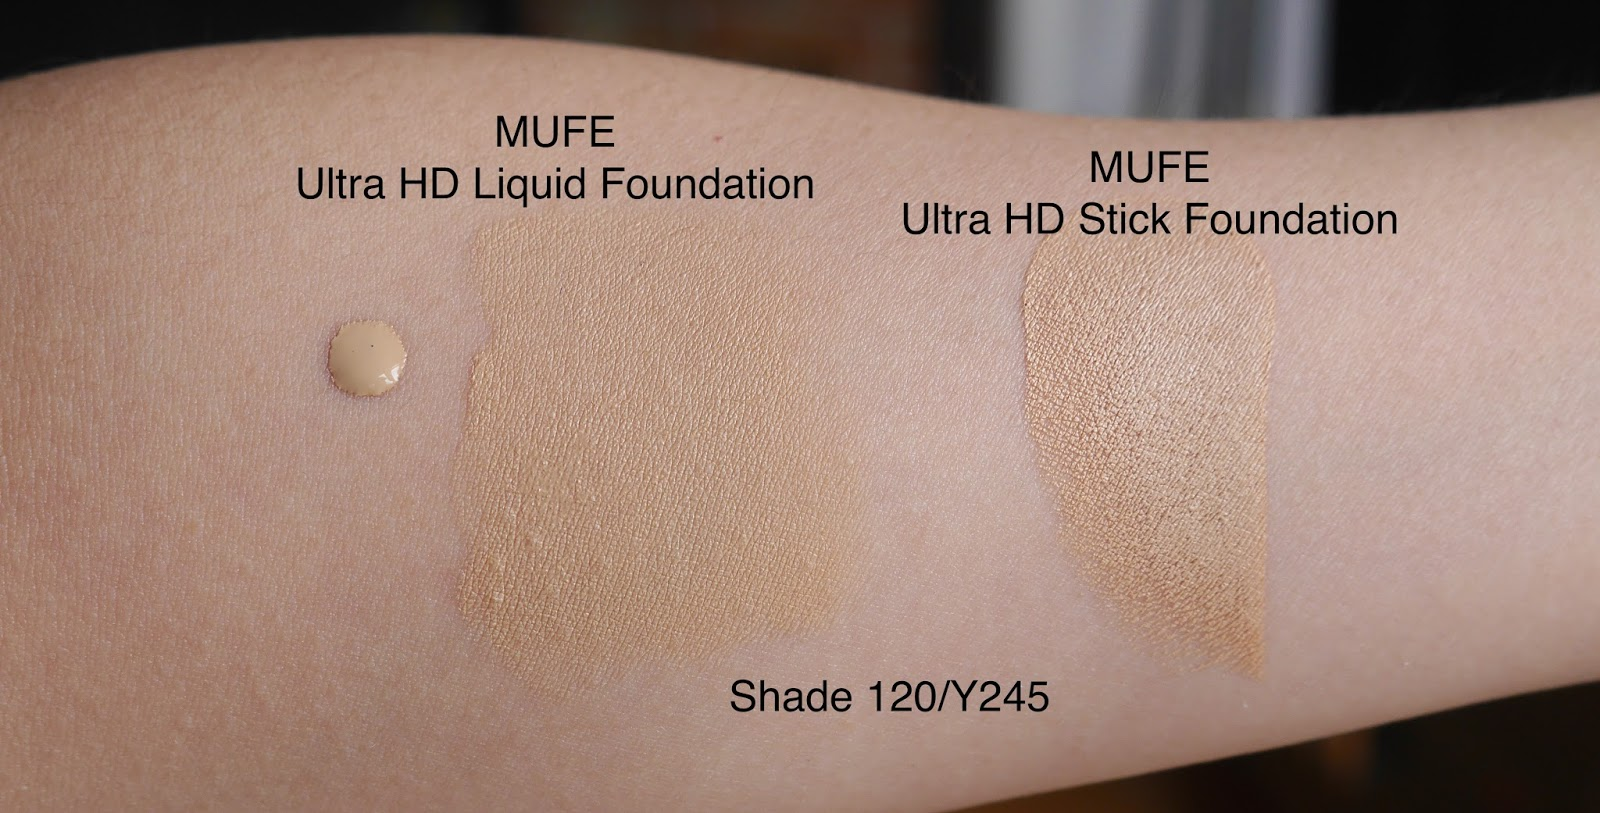 Mufe Ultra Hd Foundation Review. Make Up For Ever Ultra Hd Foundation A Beautiful Zen